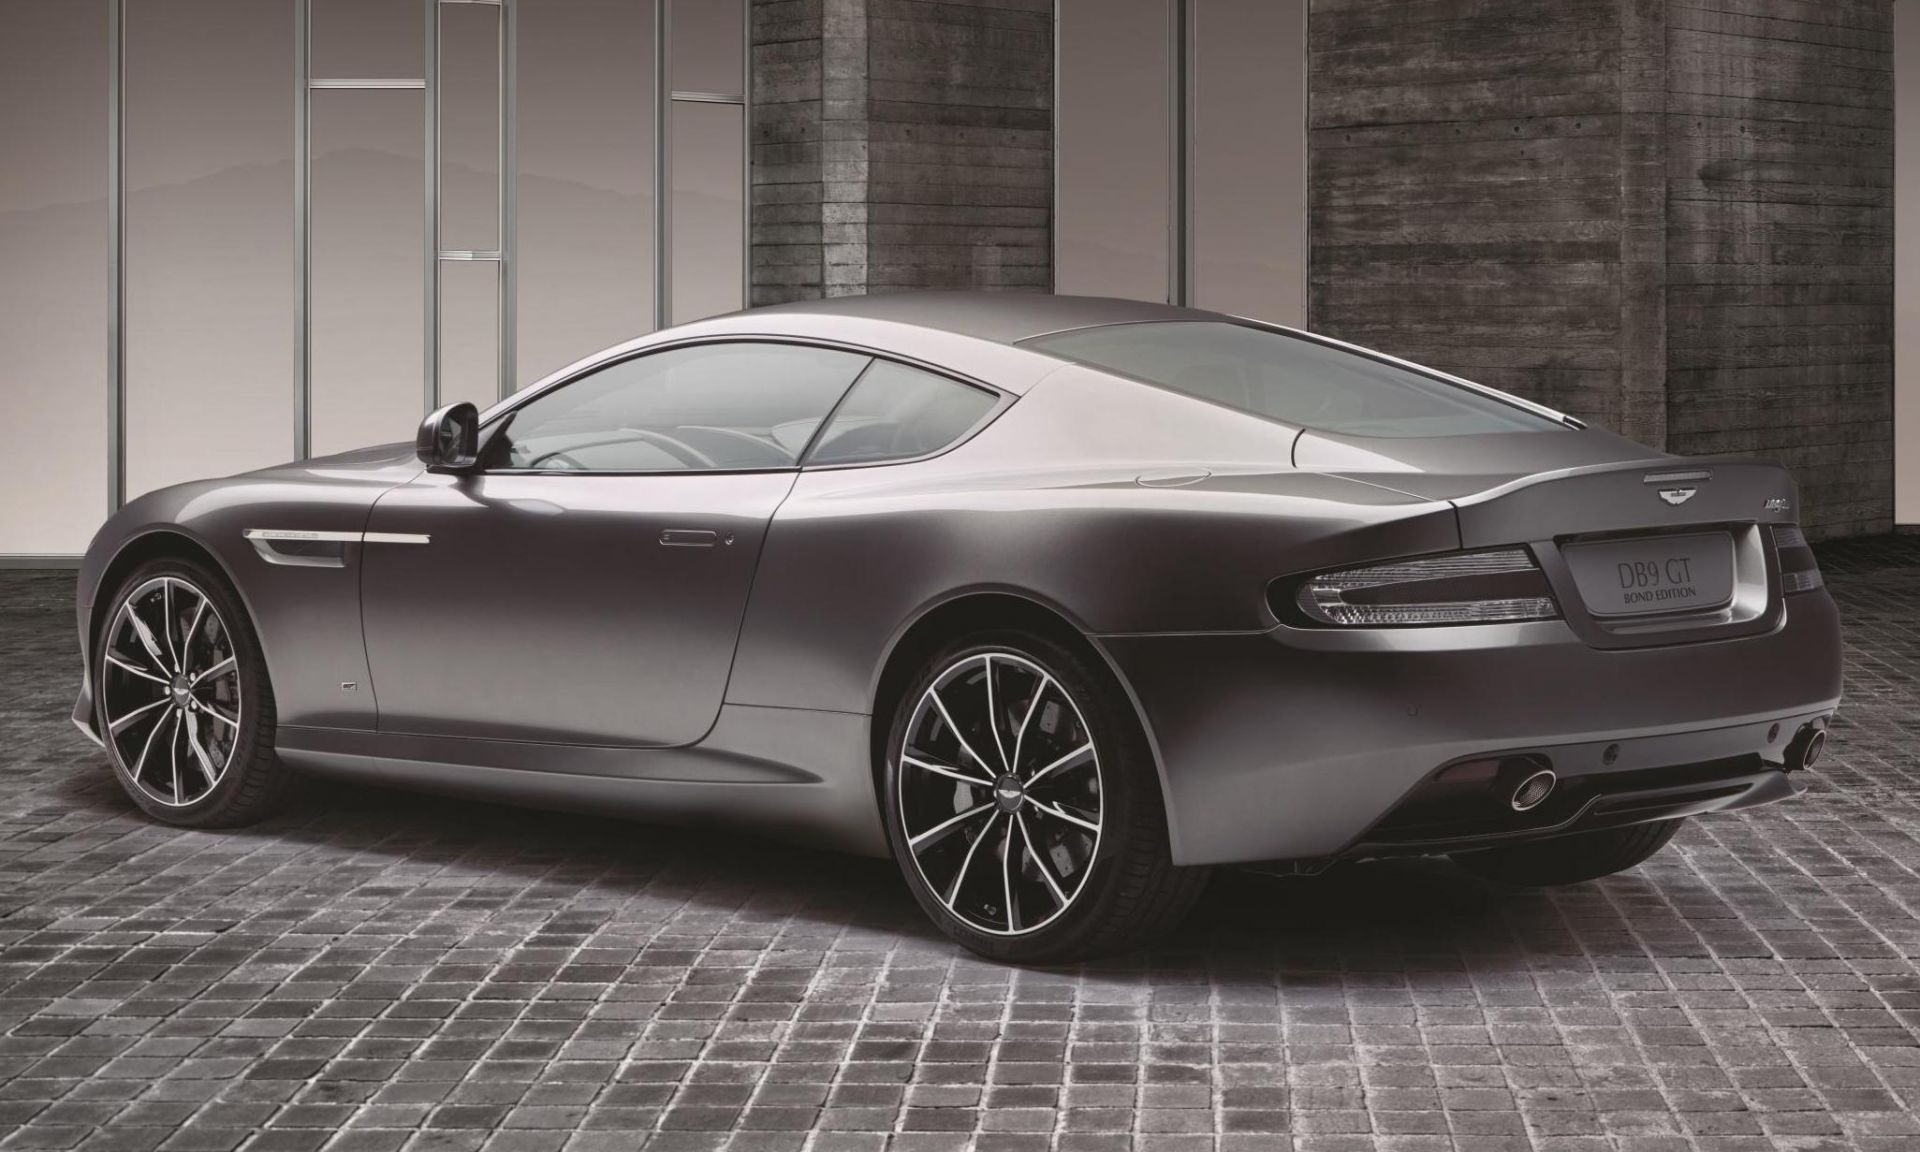 Aston Martin Db9 Gt Bond Edition  Edisi Terhad 150 Unit